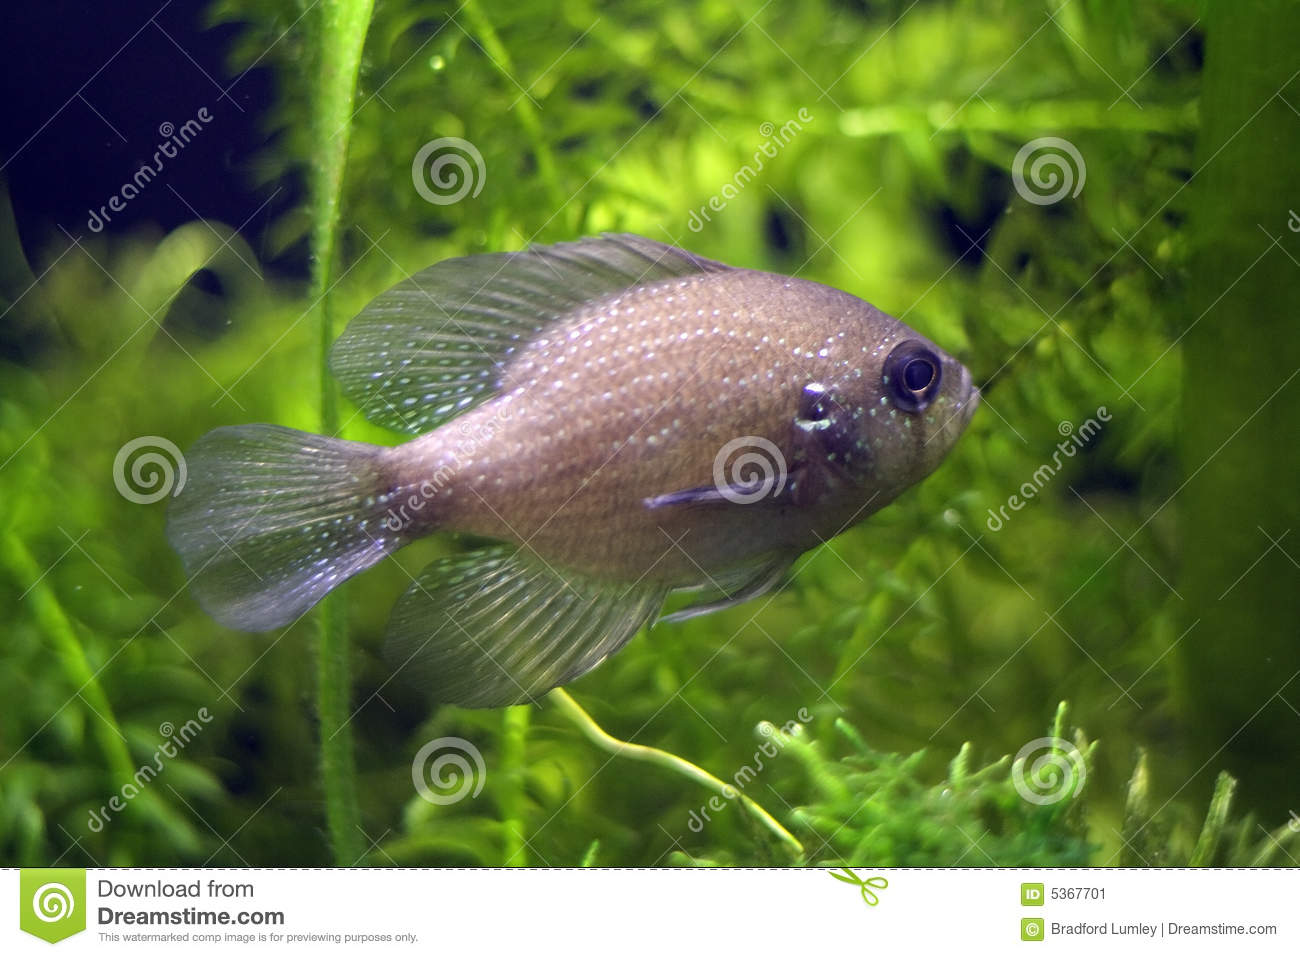 Blue Spotted Sunfish Stock Image - Image: 5367701